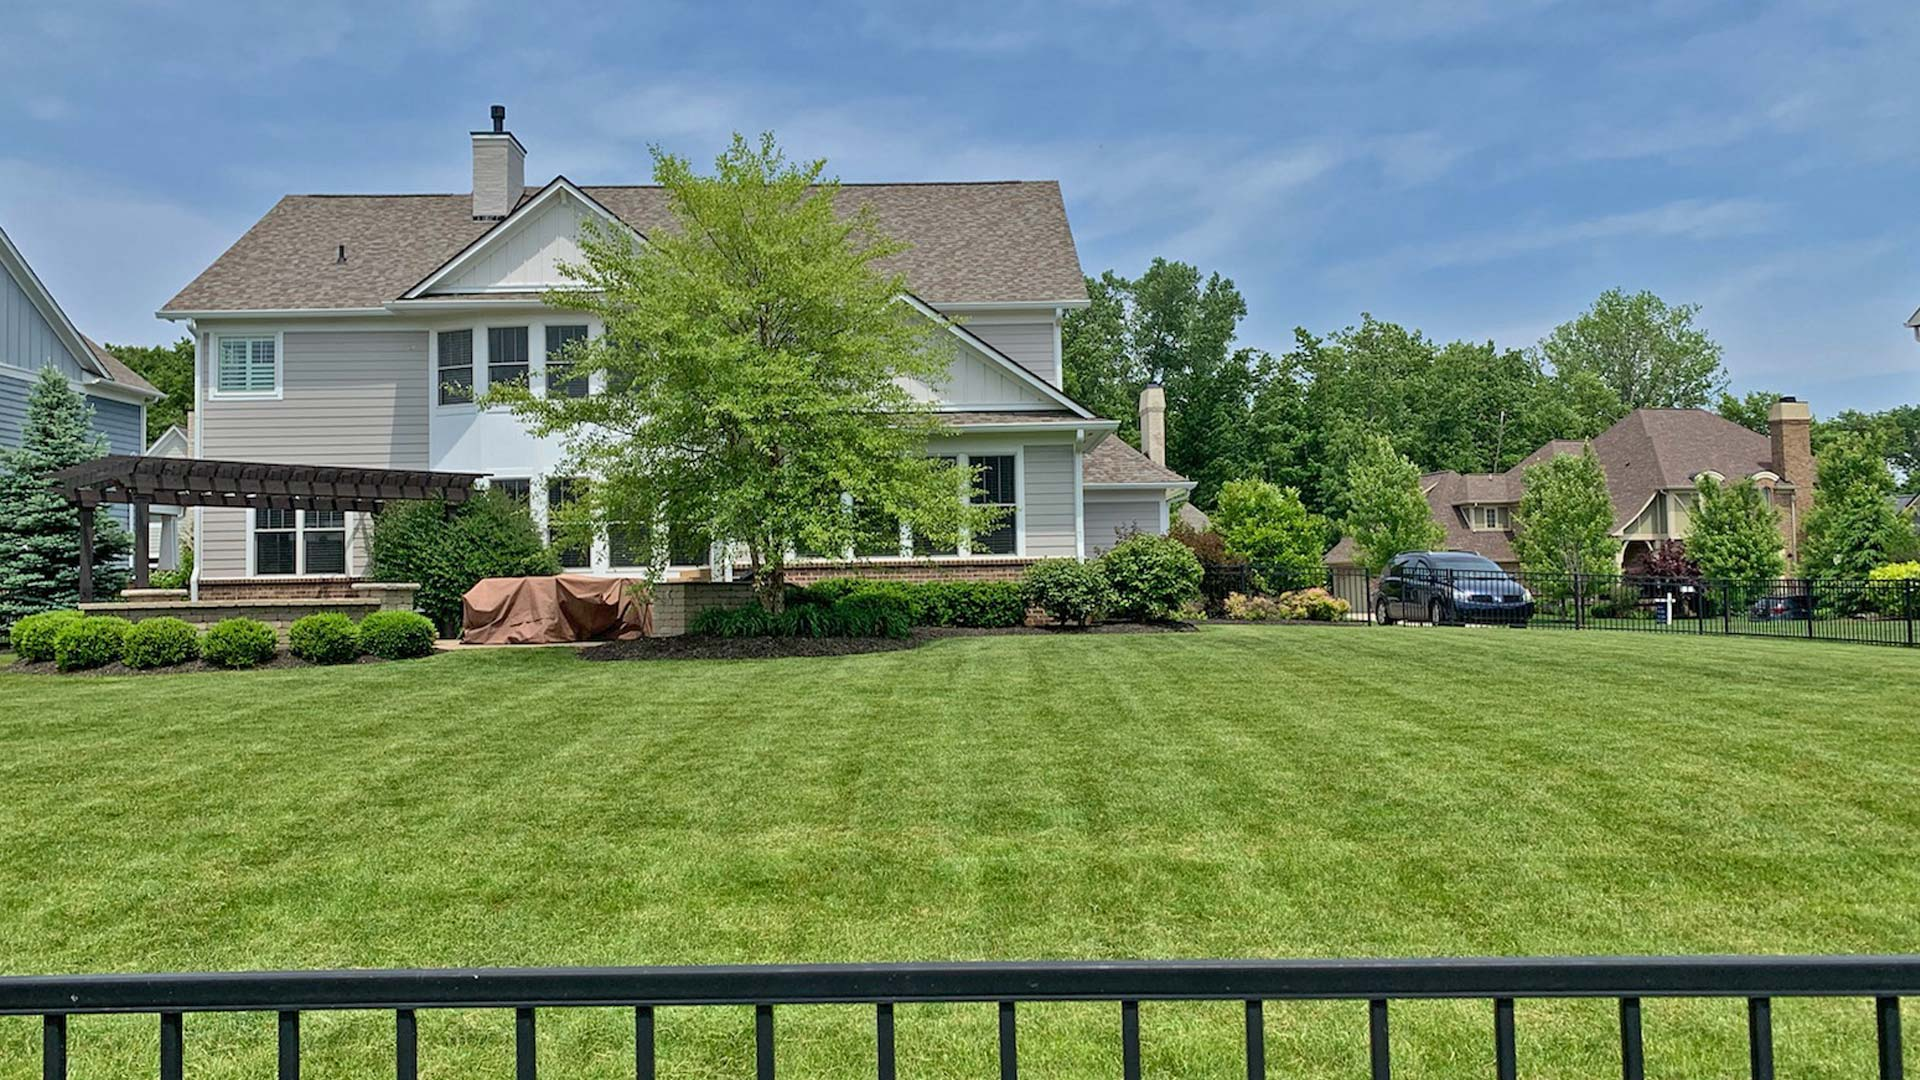 Beautifully trimmed and pruned hedges and mowed lawn of a Noblesville homeowner.